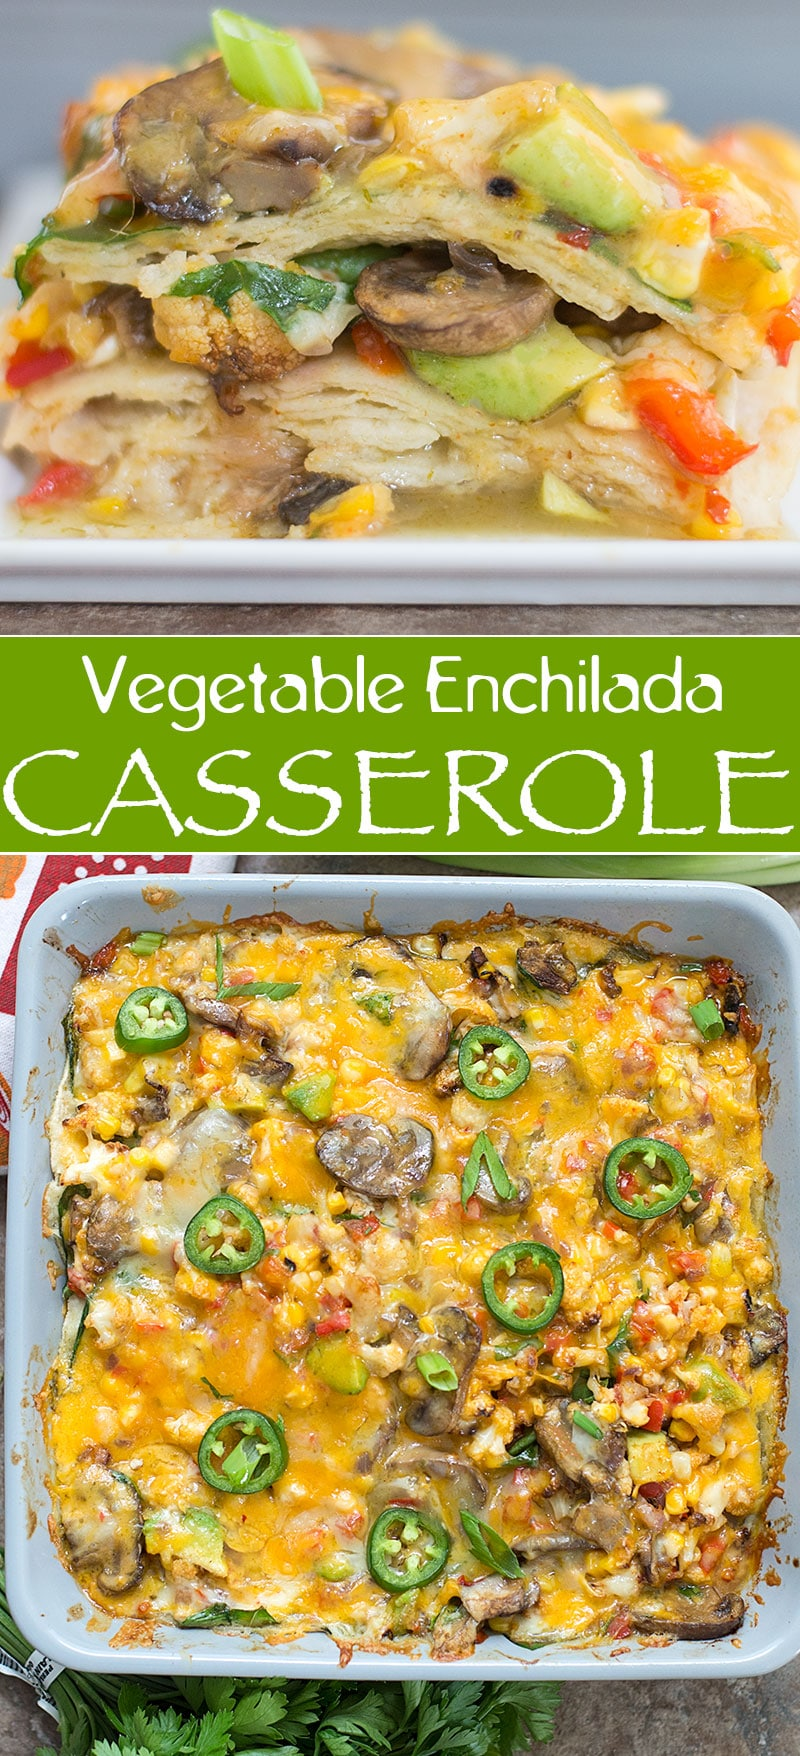 Vegetable Enchilada Casserole is made with fresh cauliflower, mushrooms, grilled corn, spinach and red peppers. Topped wih organic cheese, this is the perfect hearty meal for any night of the week.